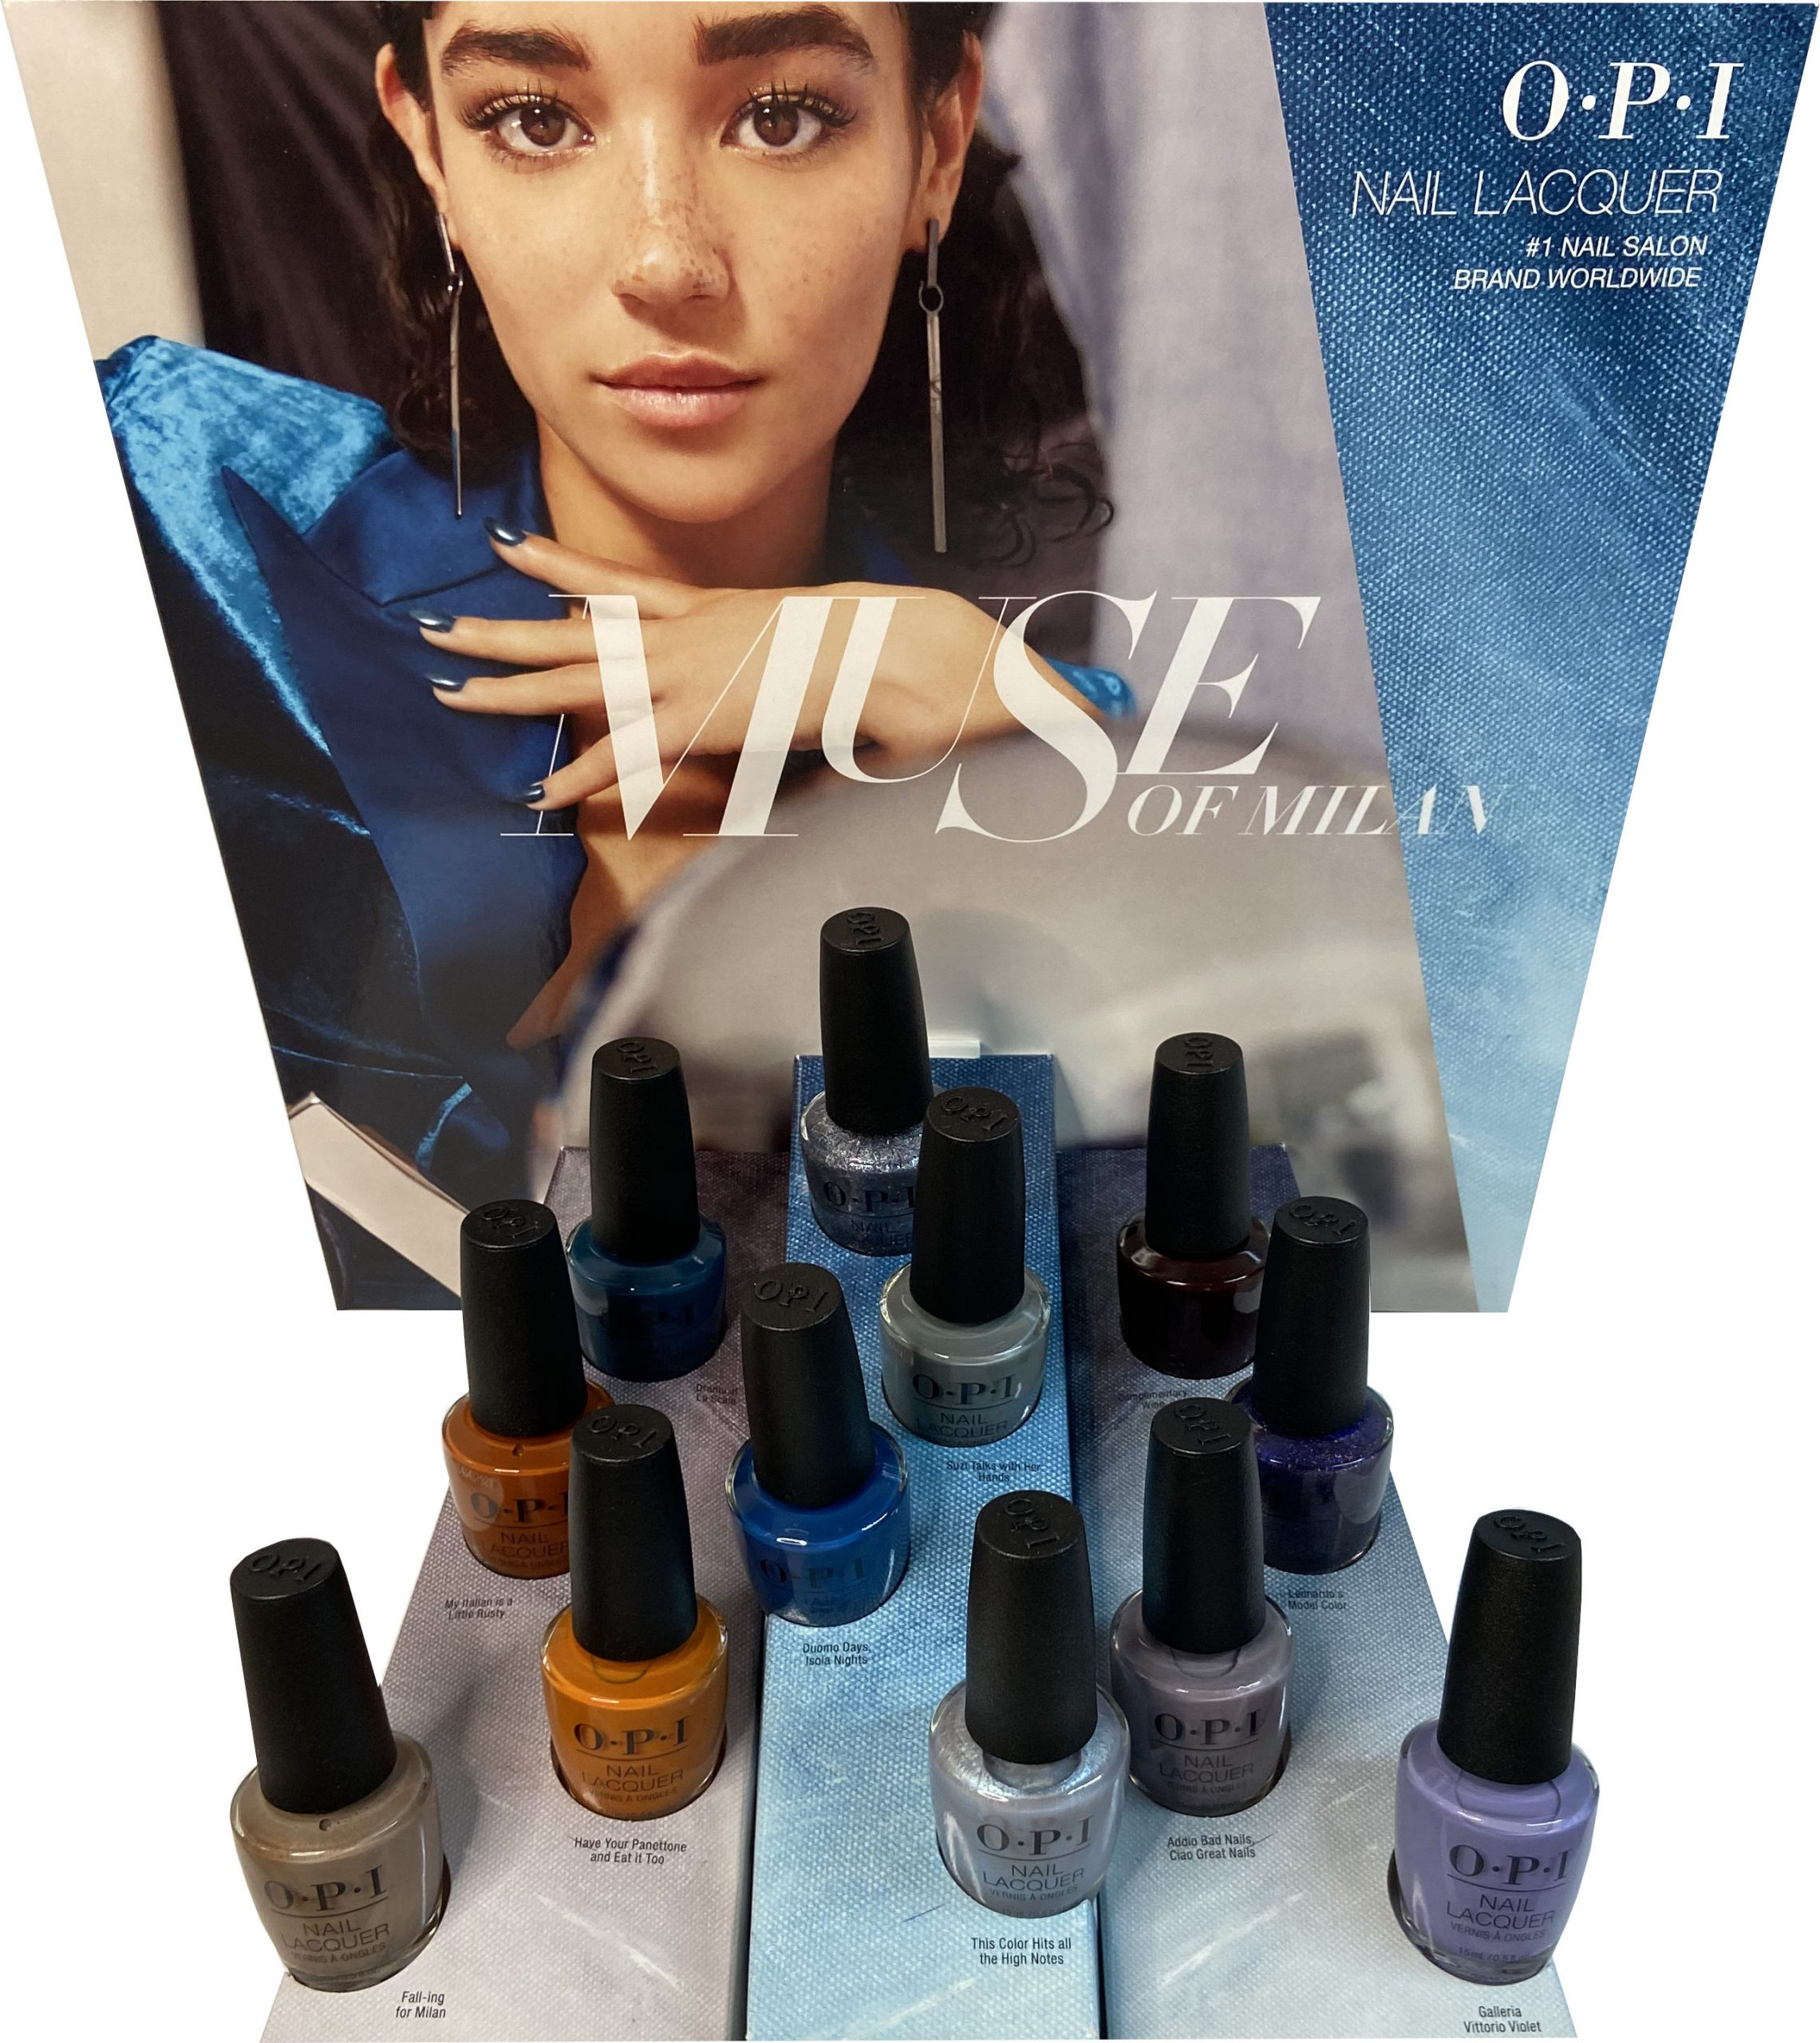 OPI Muse of Milan Review